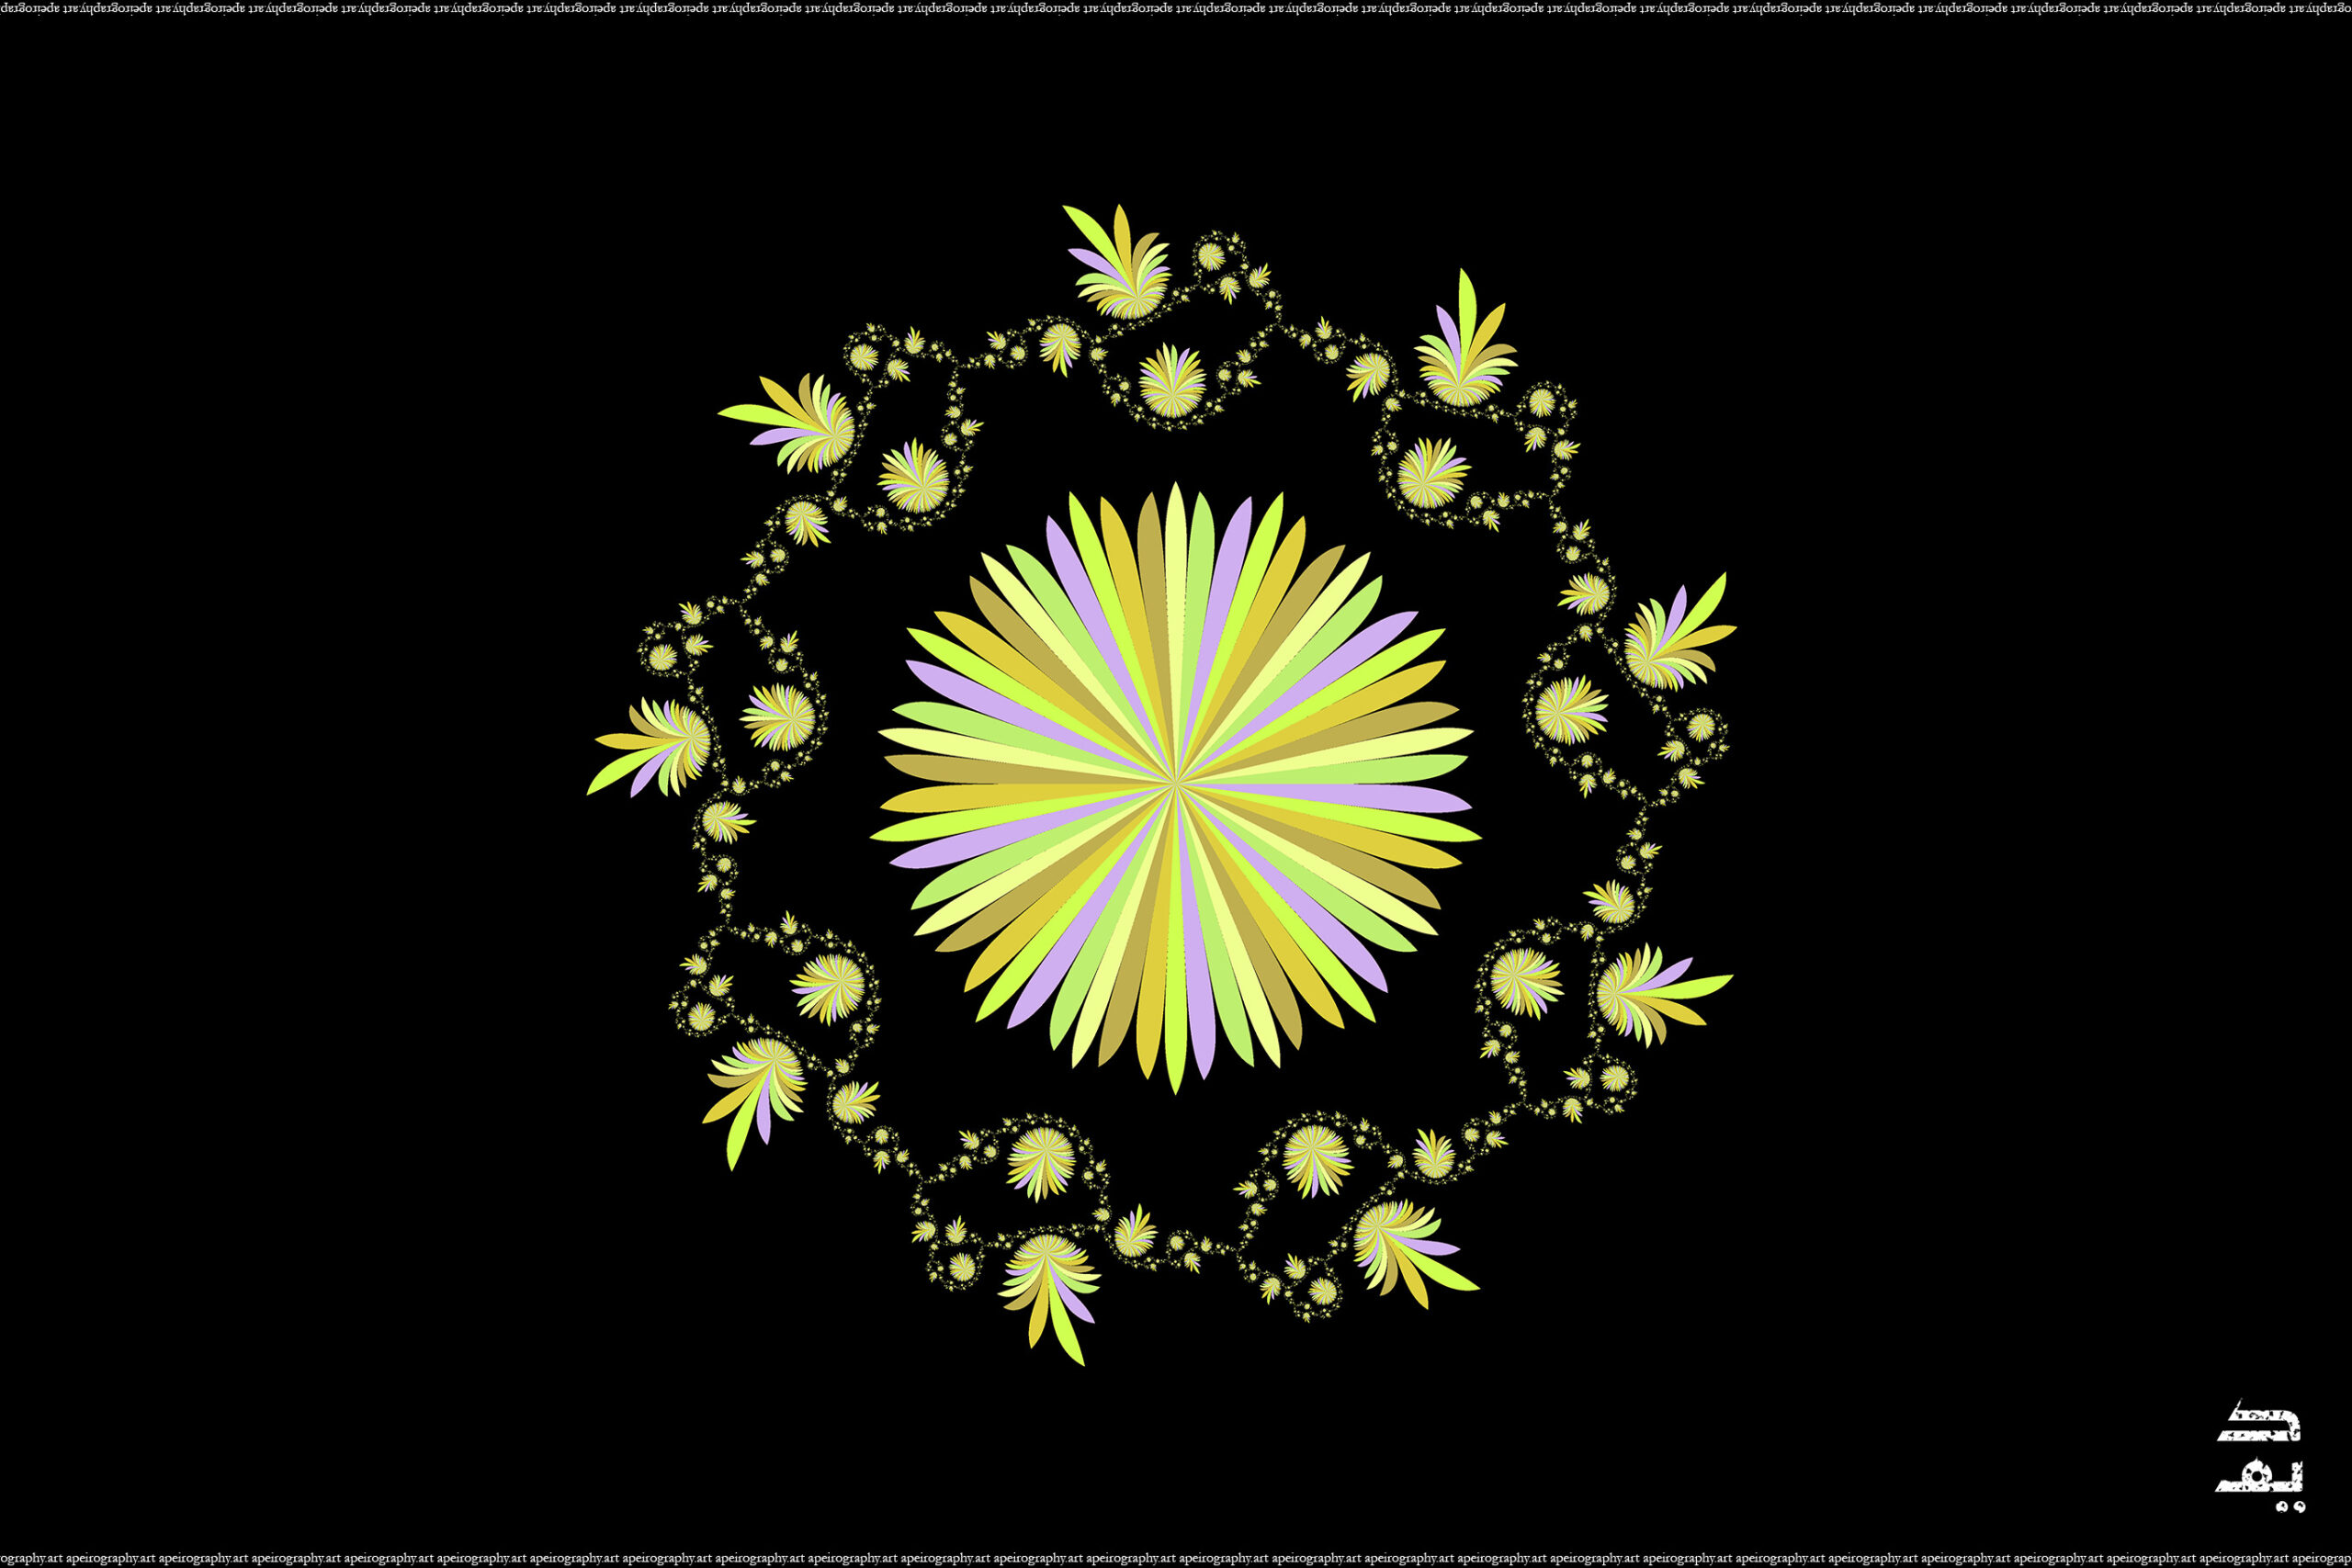 Apeirograph_003_-_Harvest_Wreath